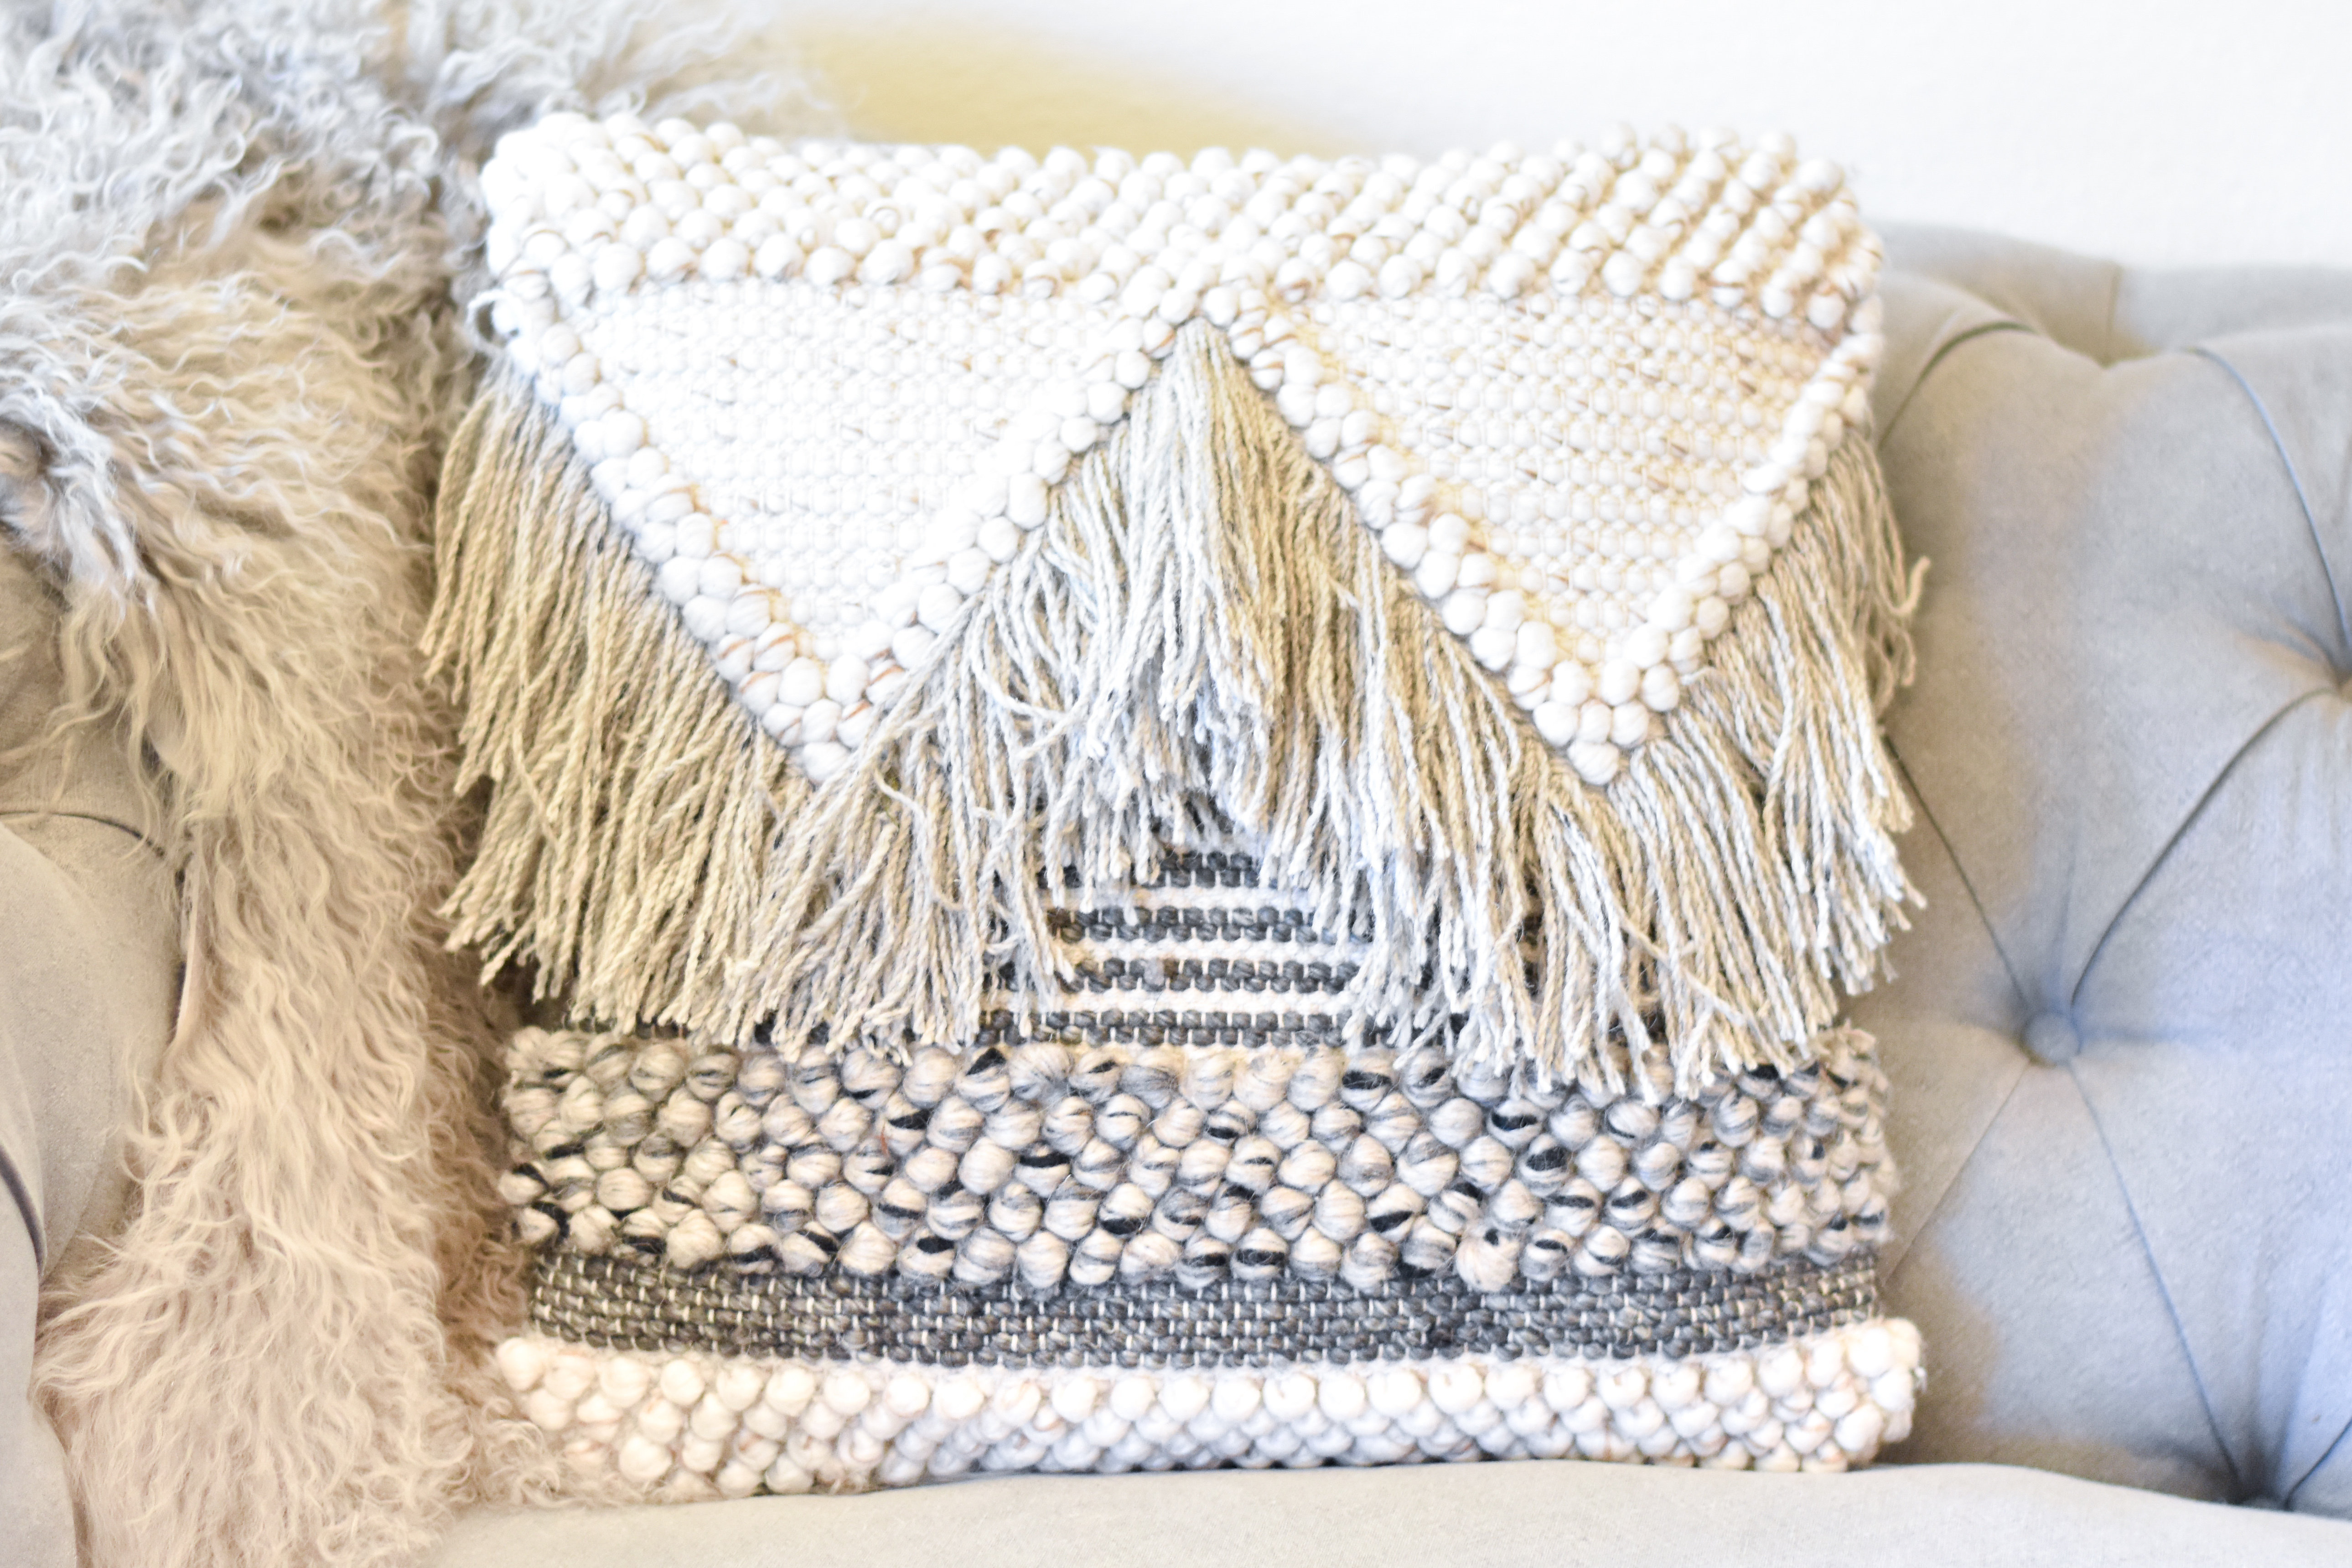 Square Textured Cotton pillow a14208520U1